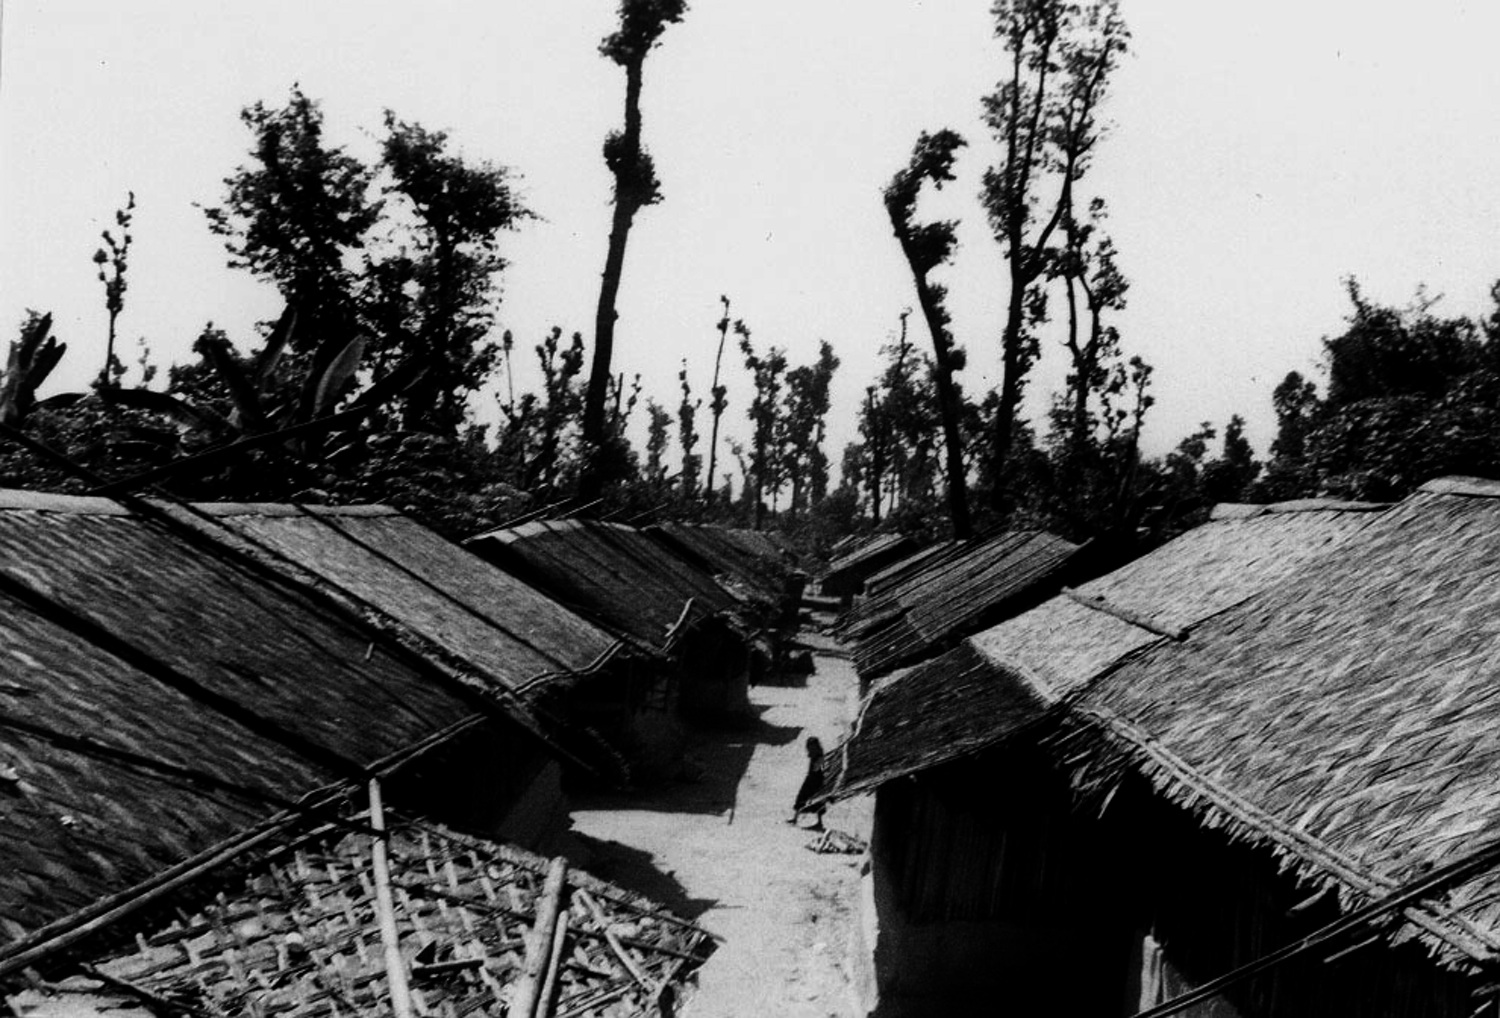 I took this photo nearby my hut. Refugee huts are arranged in lines and are made out of bamboo and plastic. I have spent 8 years of my life living in camp and I do not know how many more years we will spend here. In Bhutan now our village has become a forest. We are becoming adults but have only distant dreams of our country. (c) Pasang / Rose Class / PhotoVoice